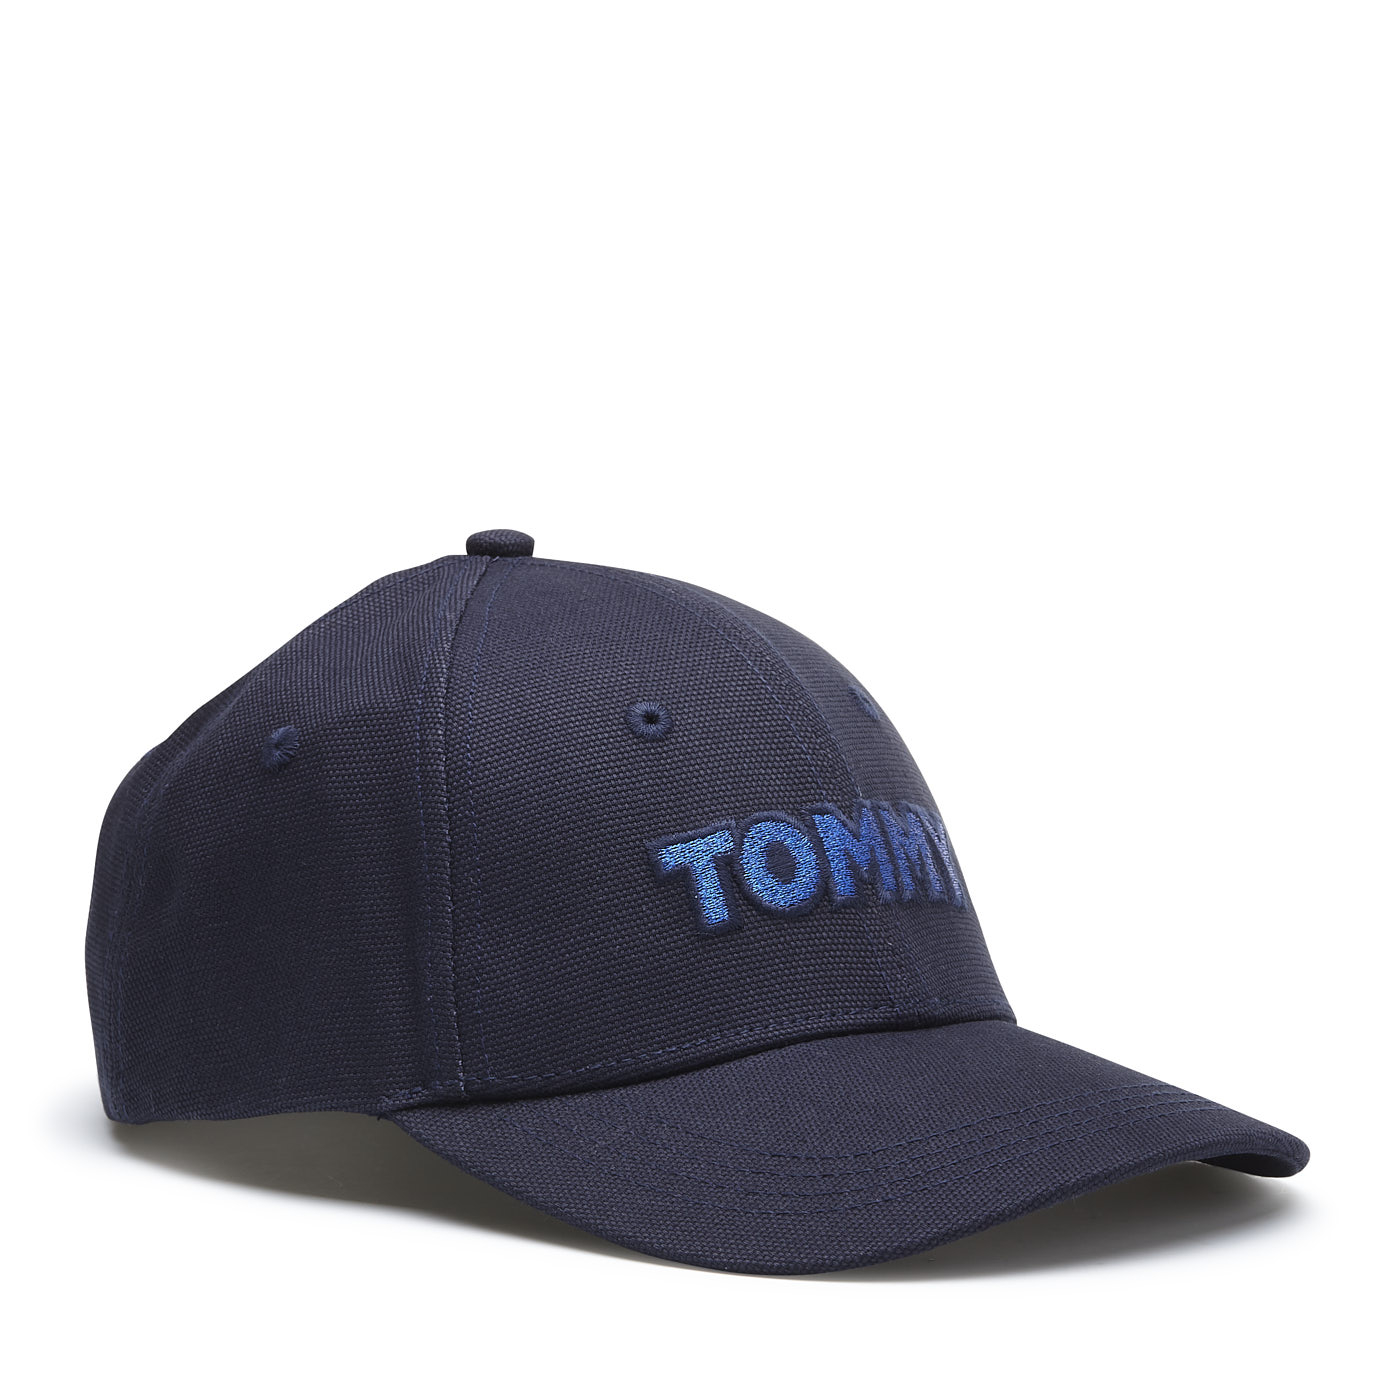 Tommy Patch casquette AW0AW06796413 - Tommy hilfiger - Modalova